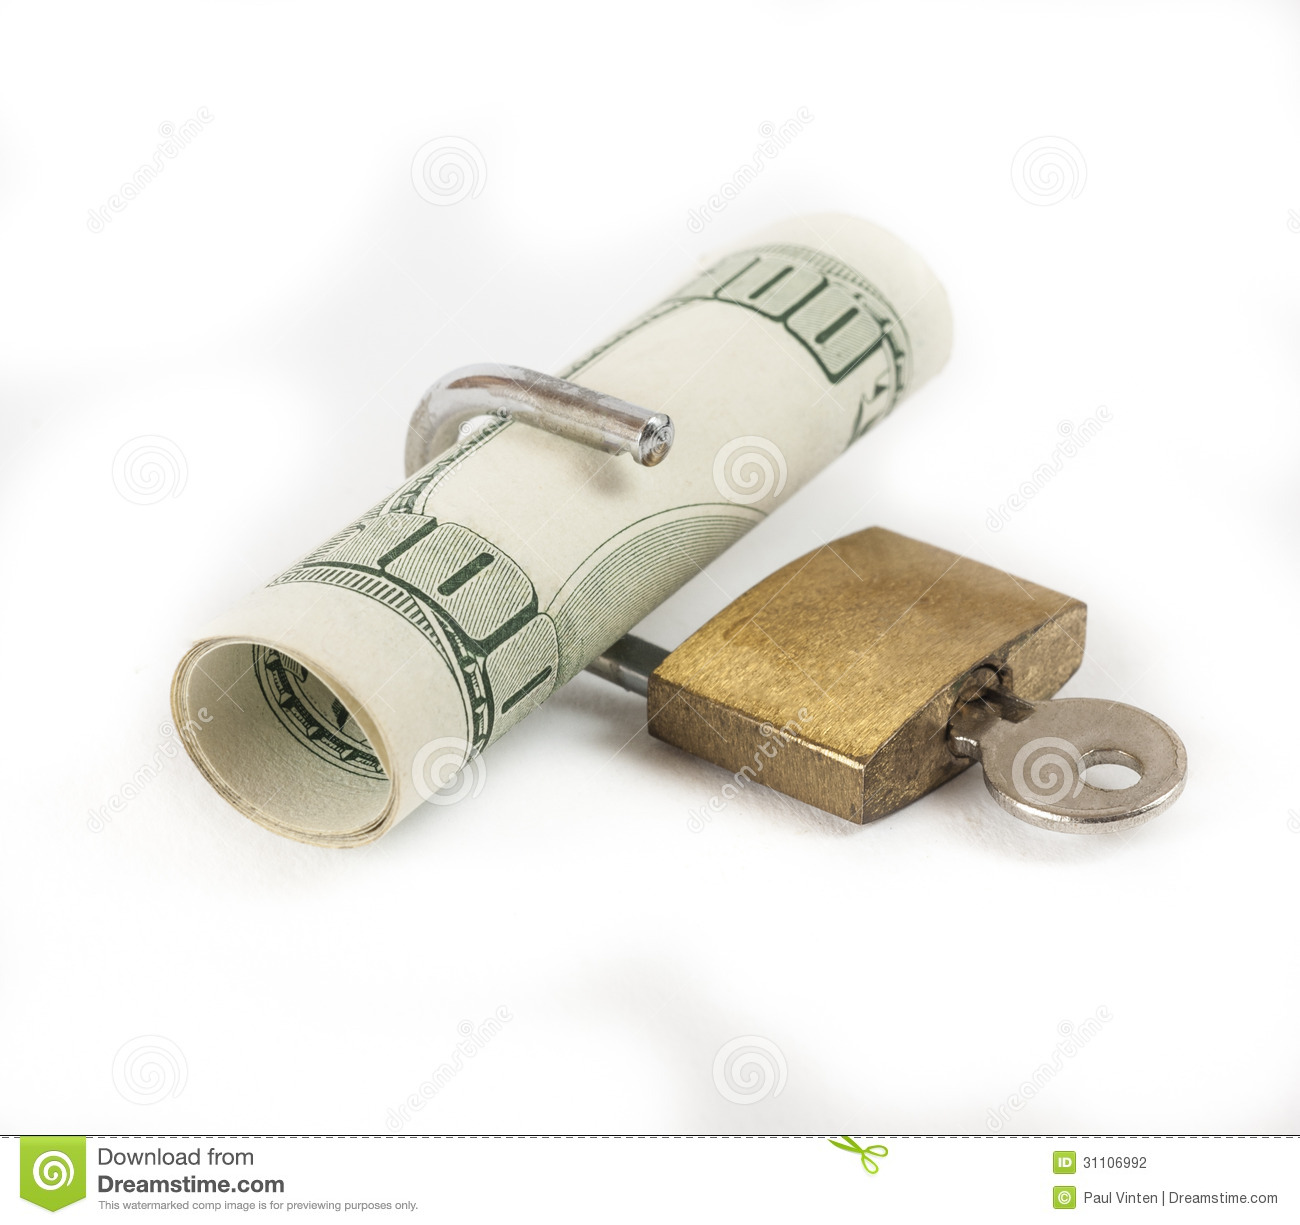 locked-finances-concept-currency-american-dollars-cash-padlock-isolated-white-background-financial-security-31106992.jpg